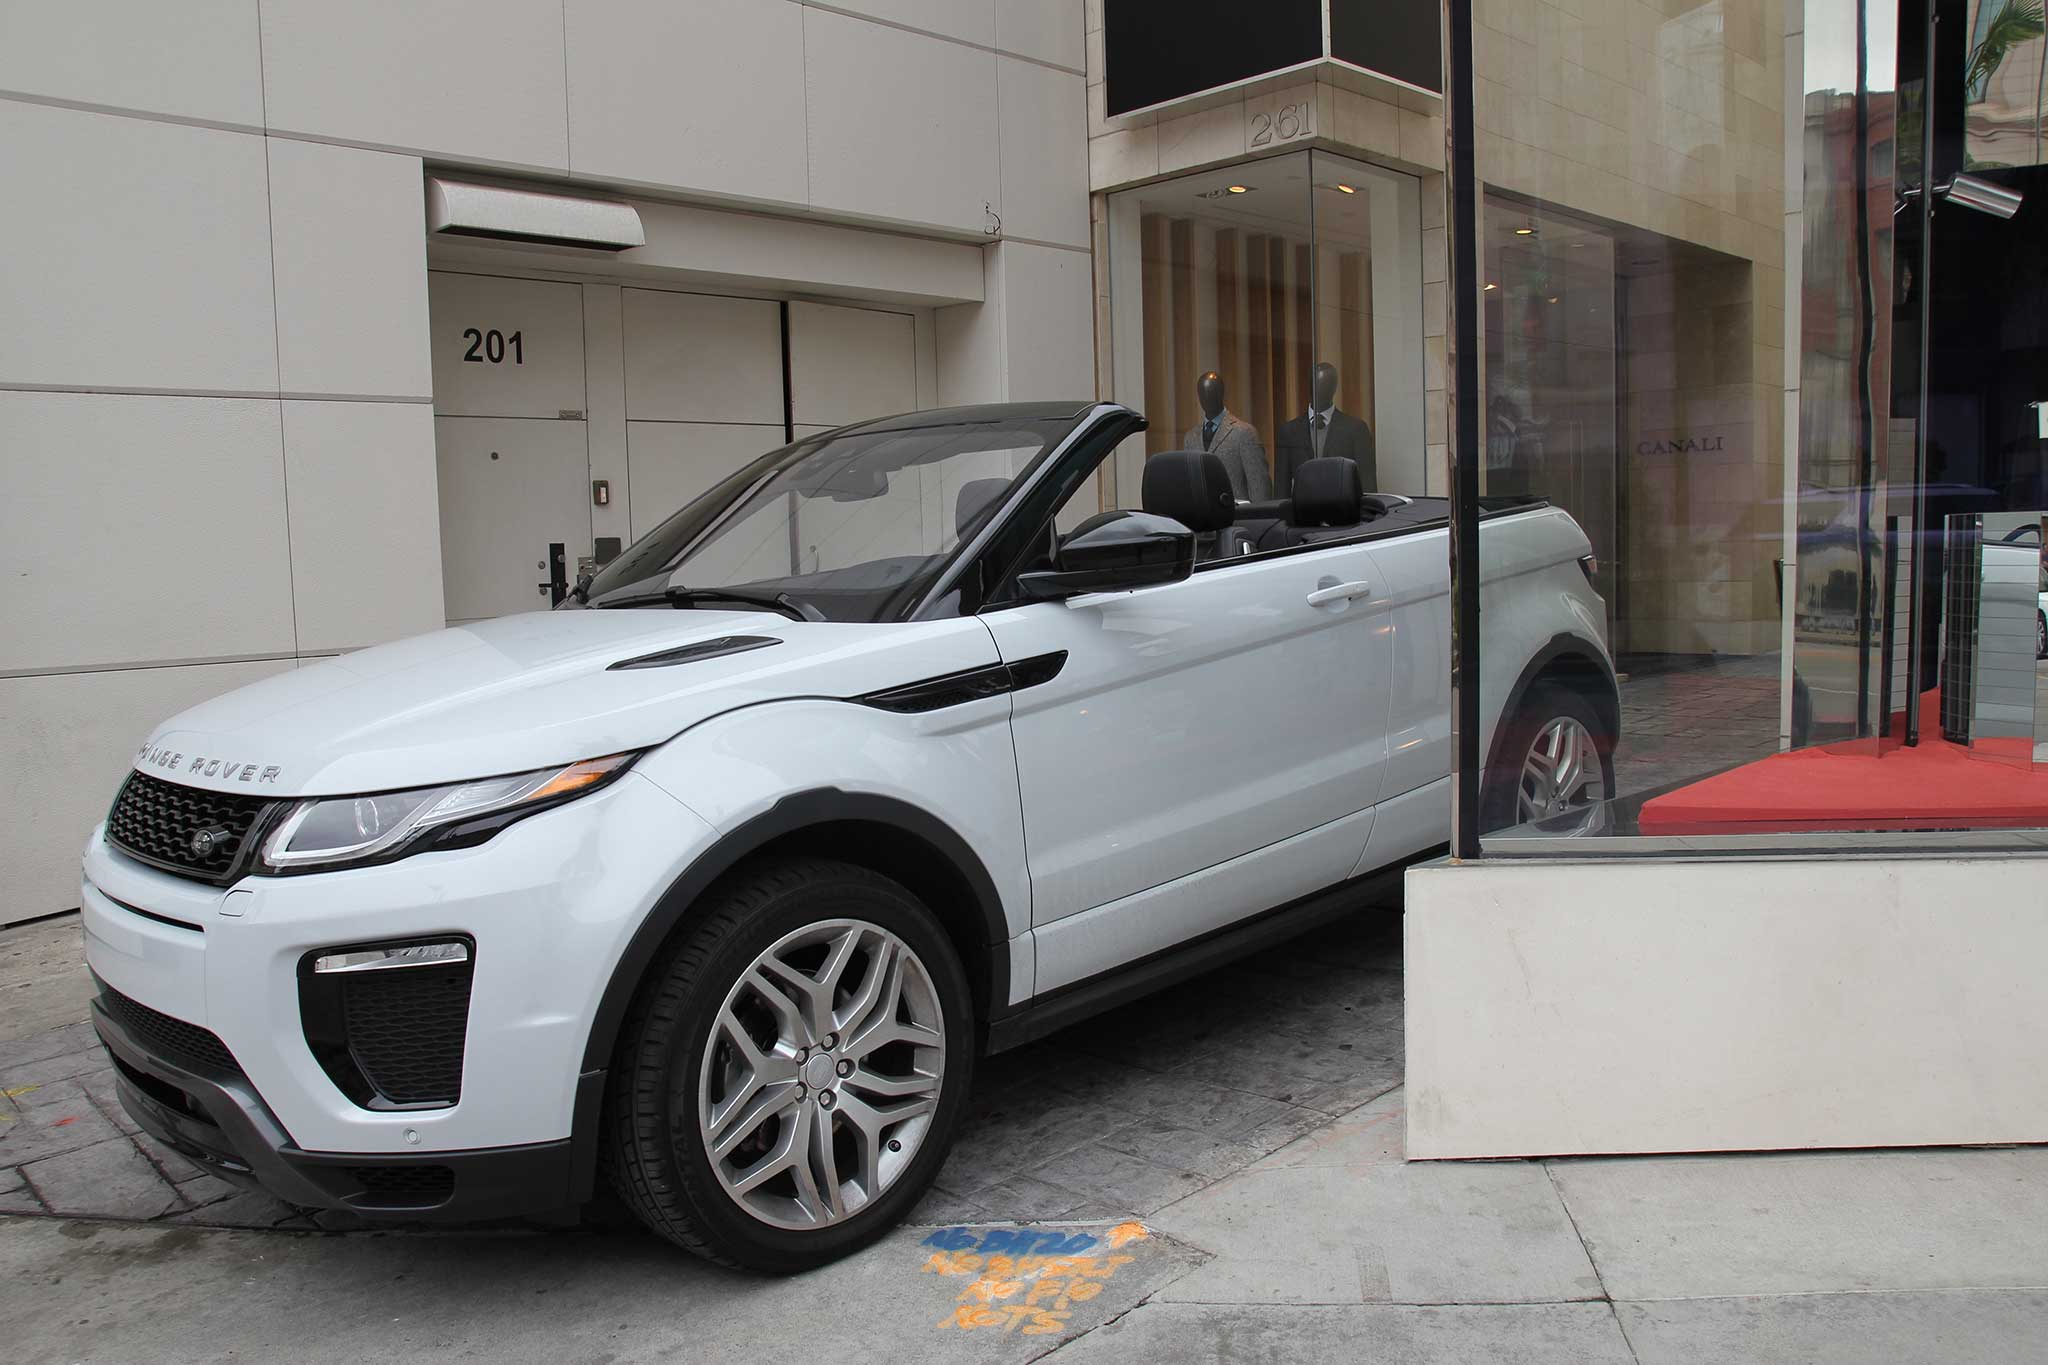 Quick Take 2016 Range Rover Evoque Convertible HSE Dynamic